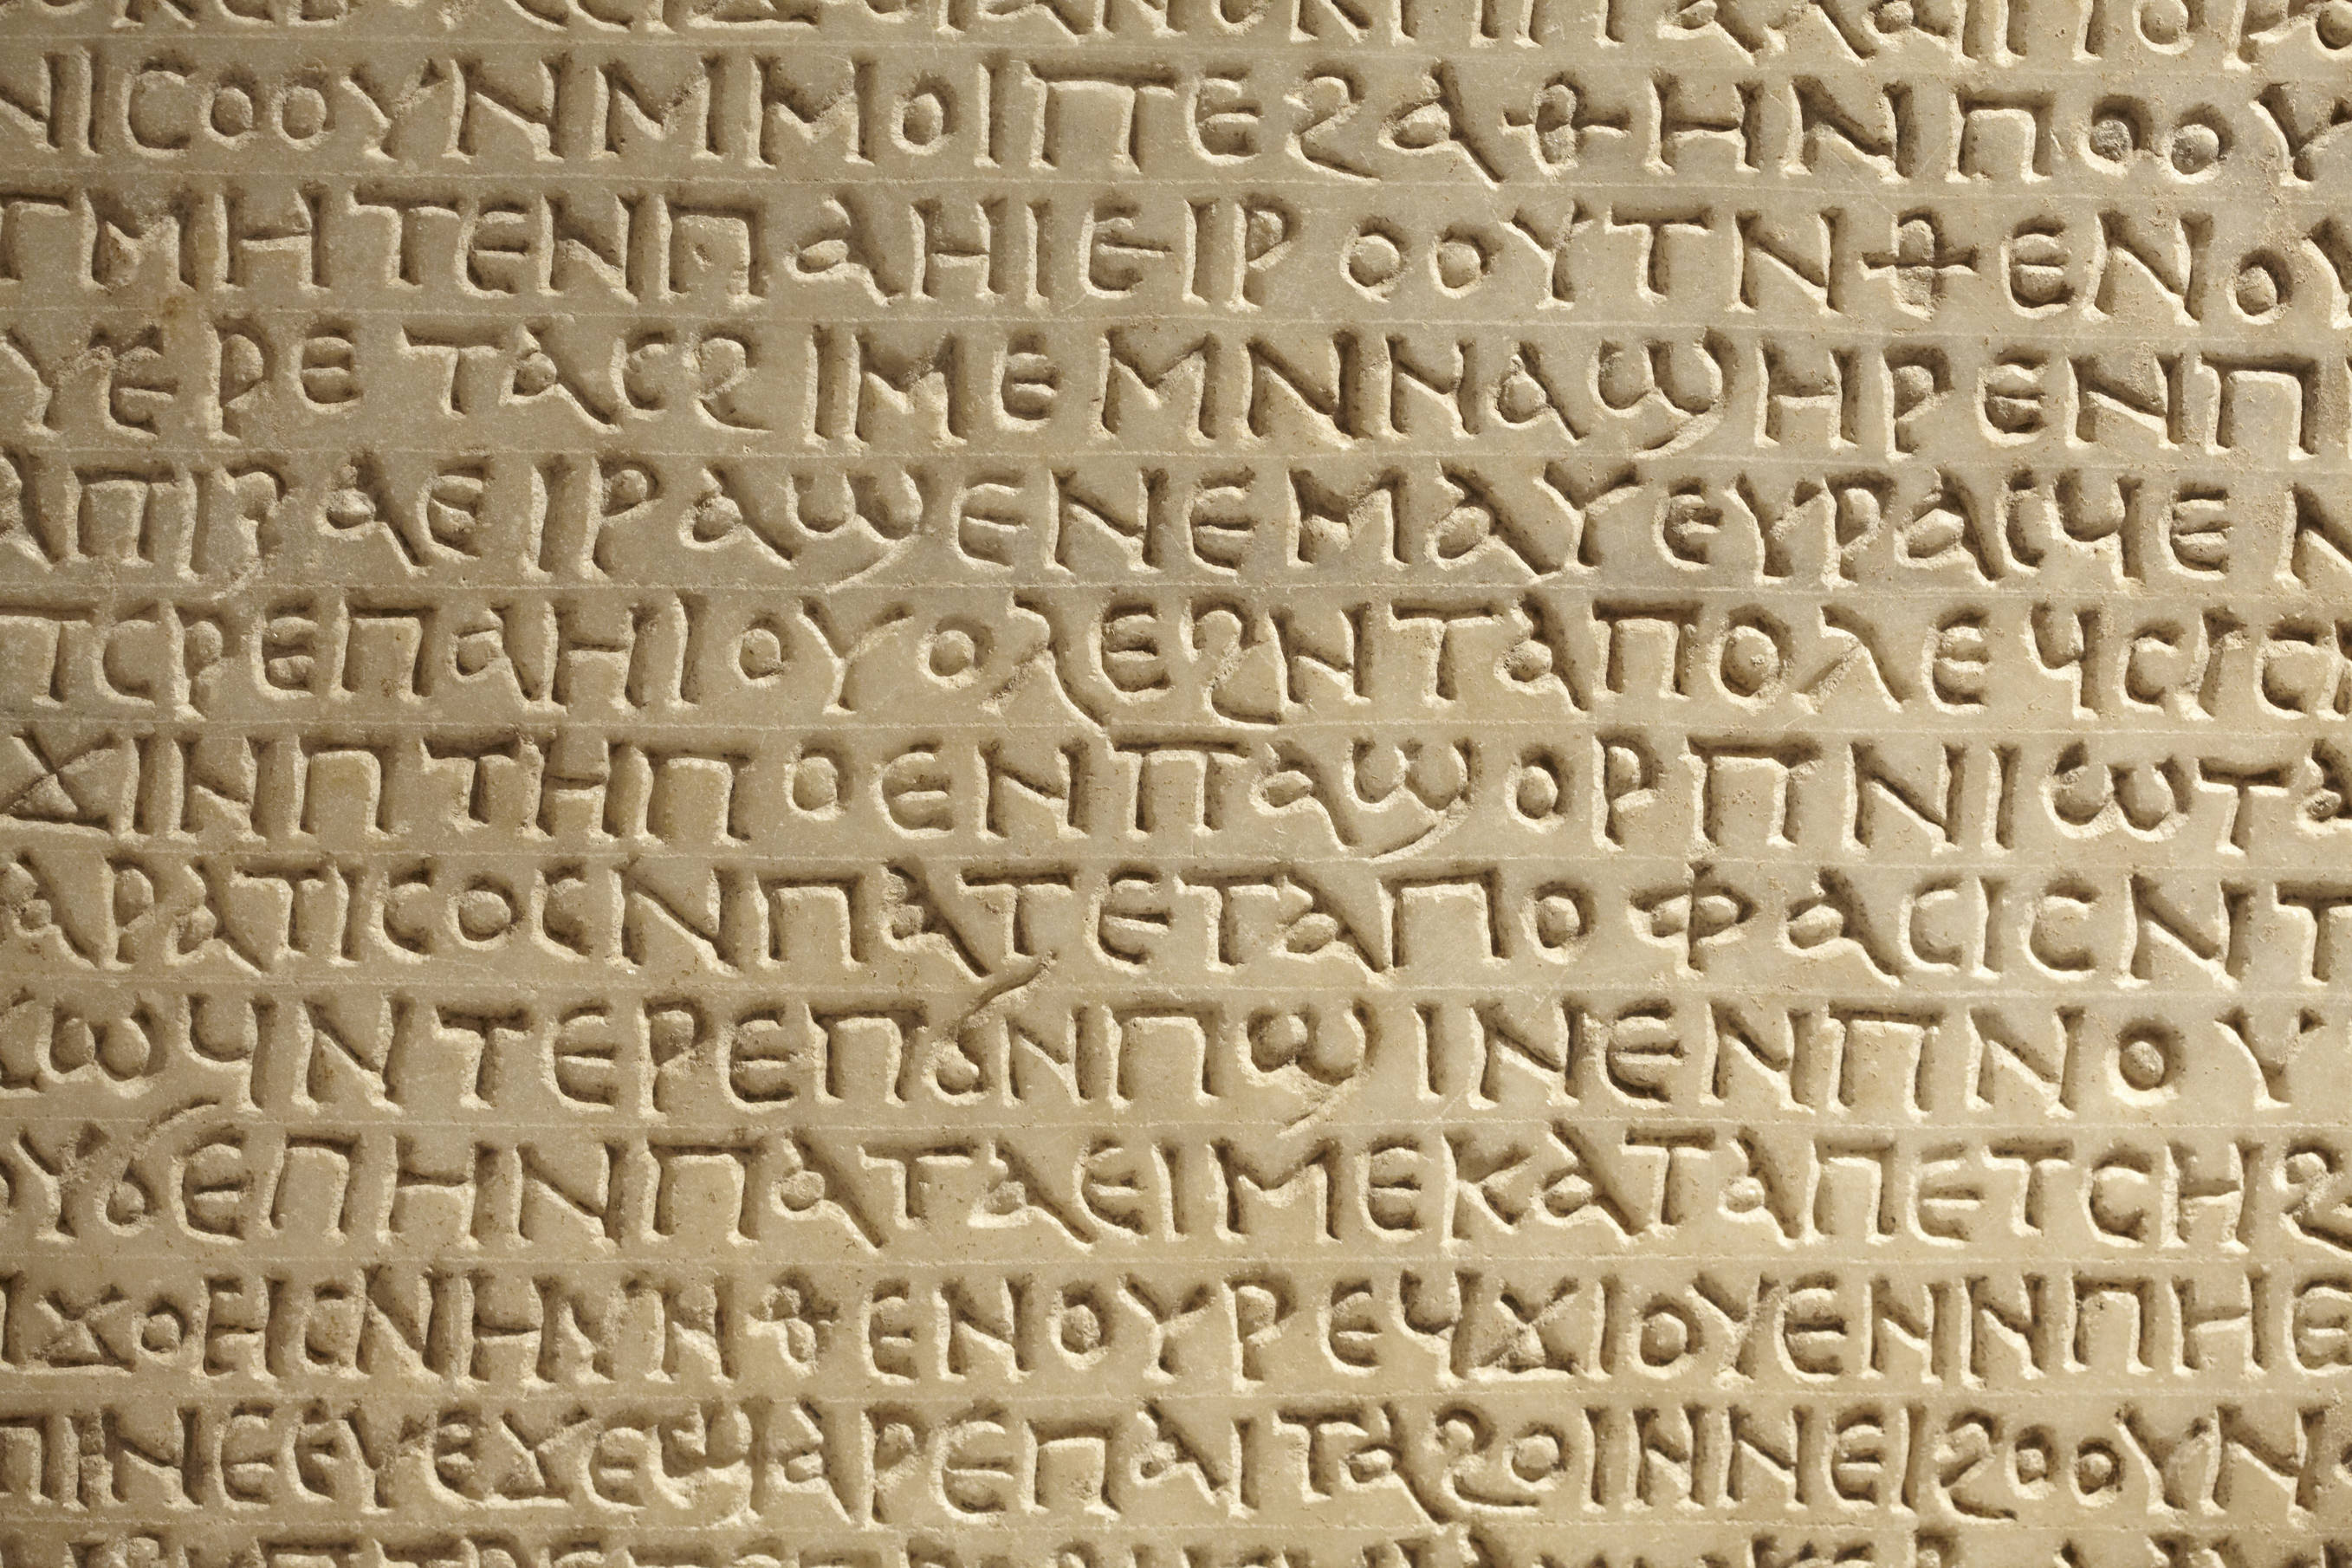 Ancient greek writing on stone background